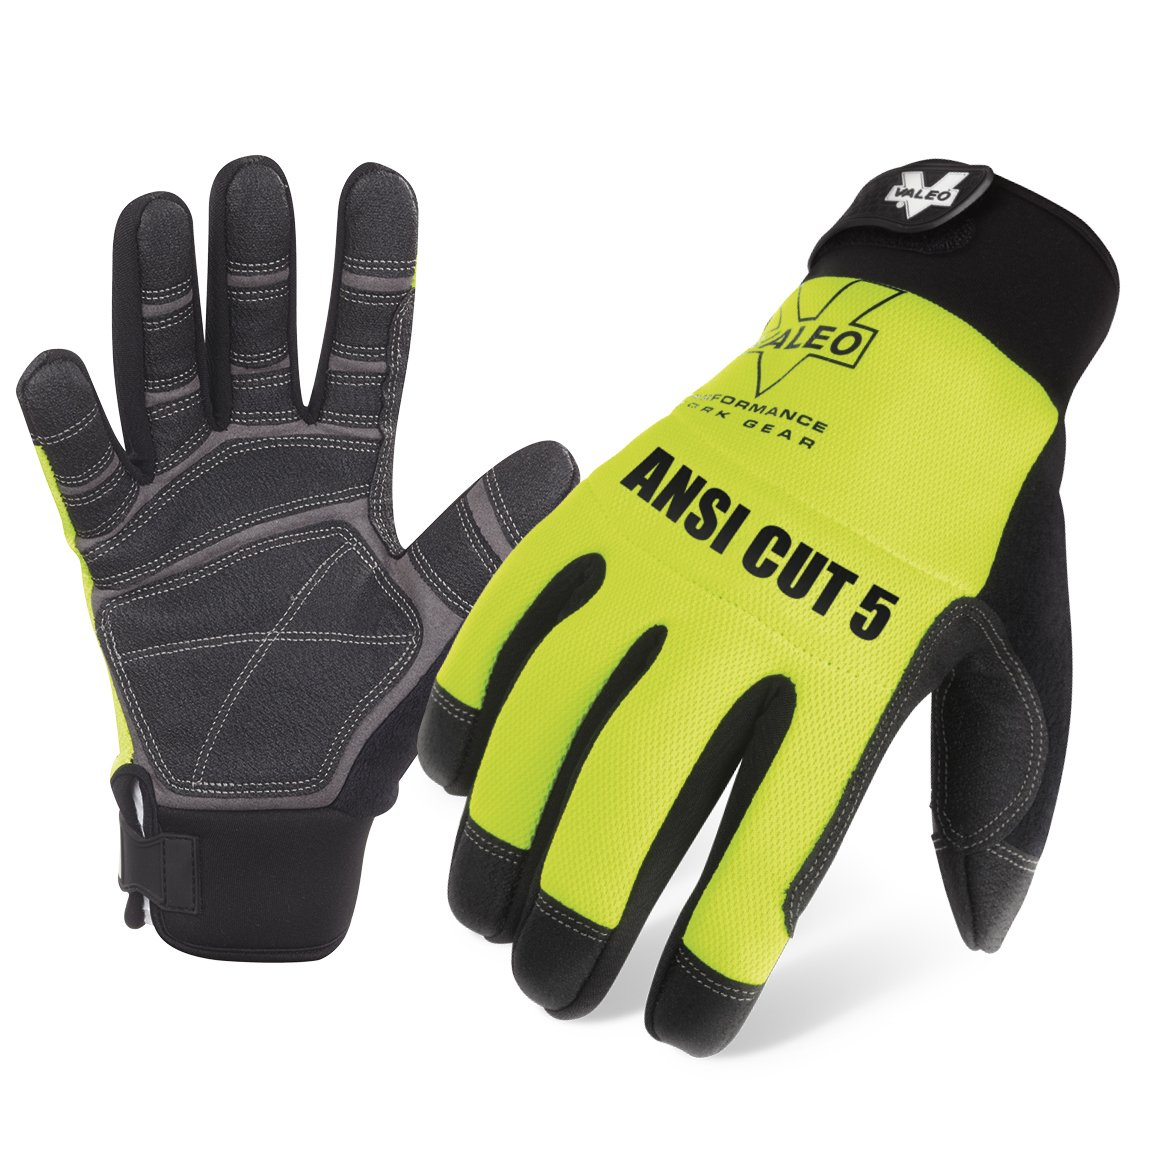 Valeo Industrial V100 Mechanics ANSI Cut 5 Cold Weather Gloves, VI9549, Pair, Yellow, Medium